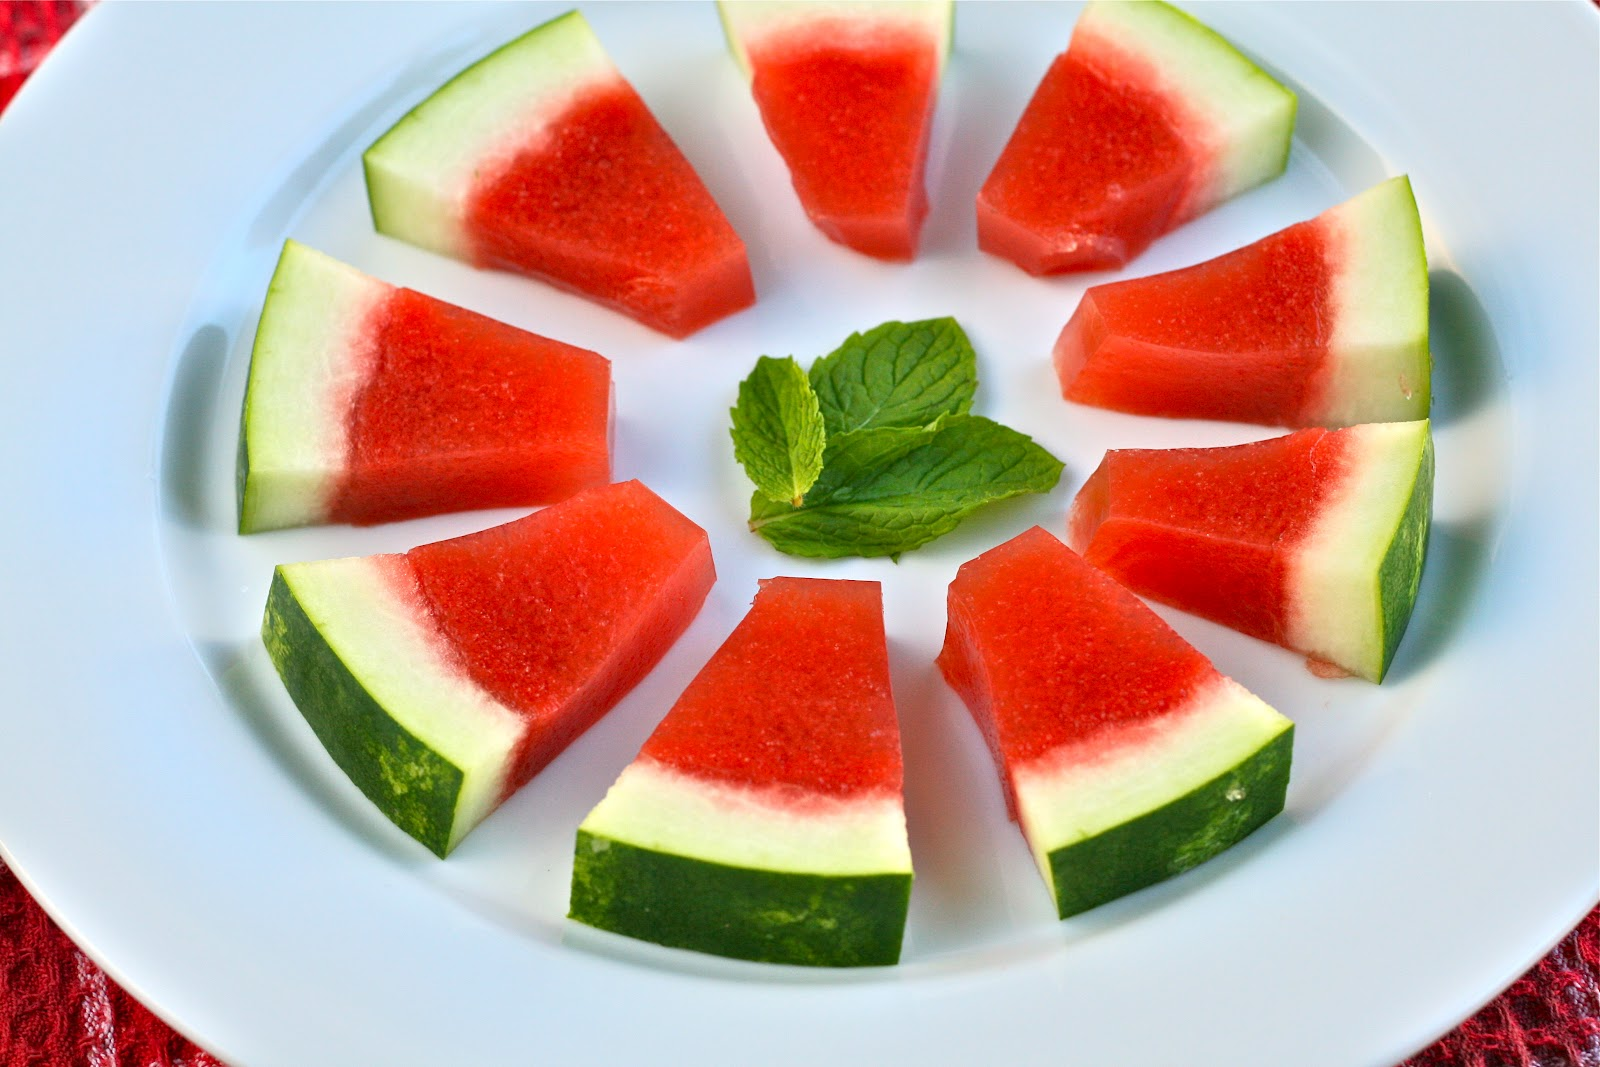 Jello shots with fruit inside - Jello Shots With Fruit Inside 55